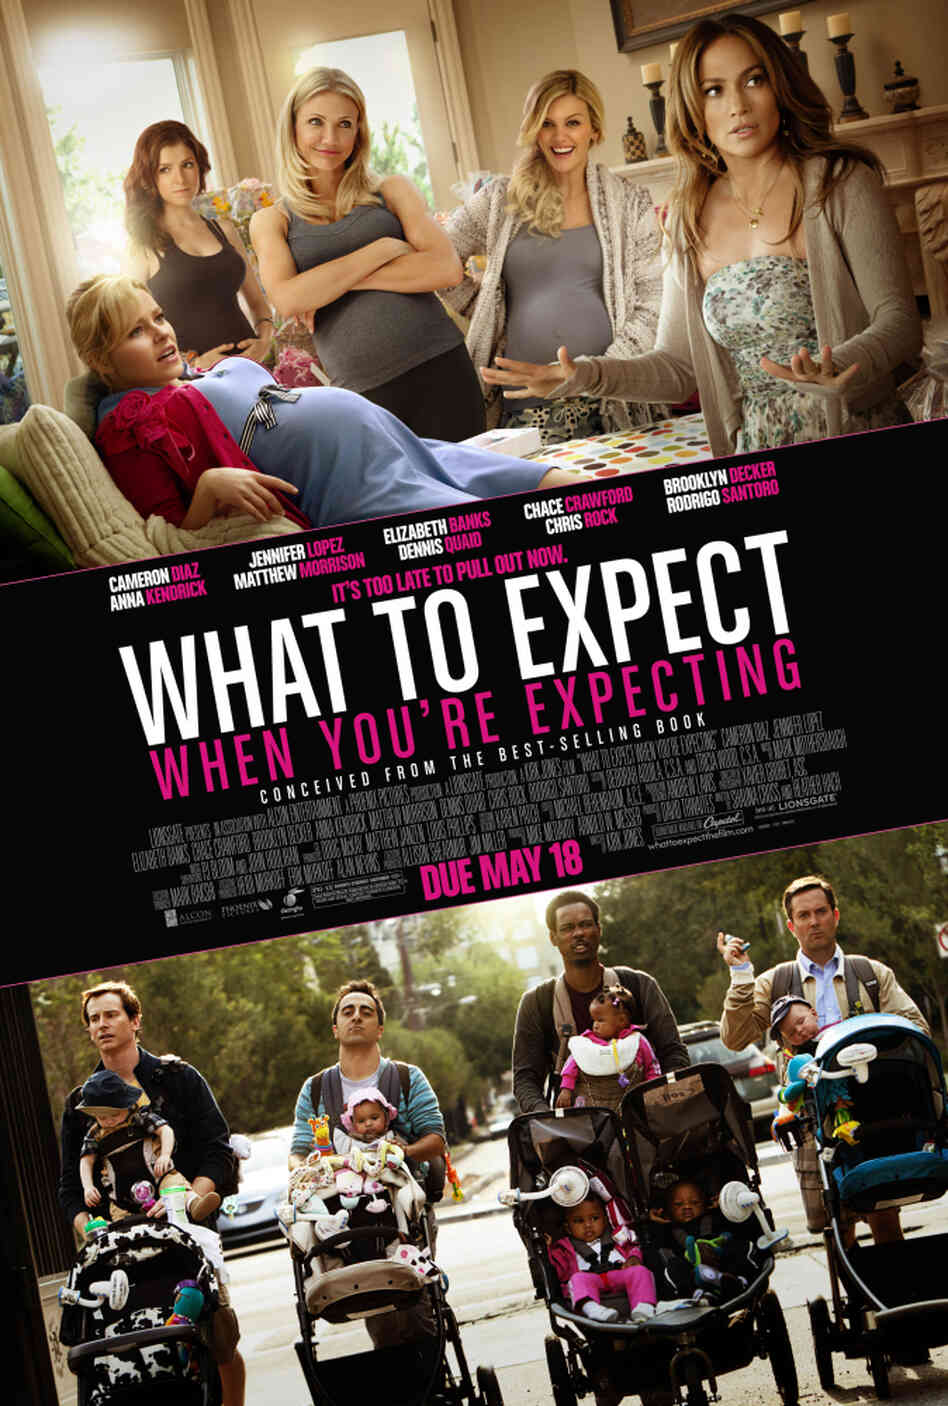 The poster for What to Expect When You're Expecting.